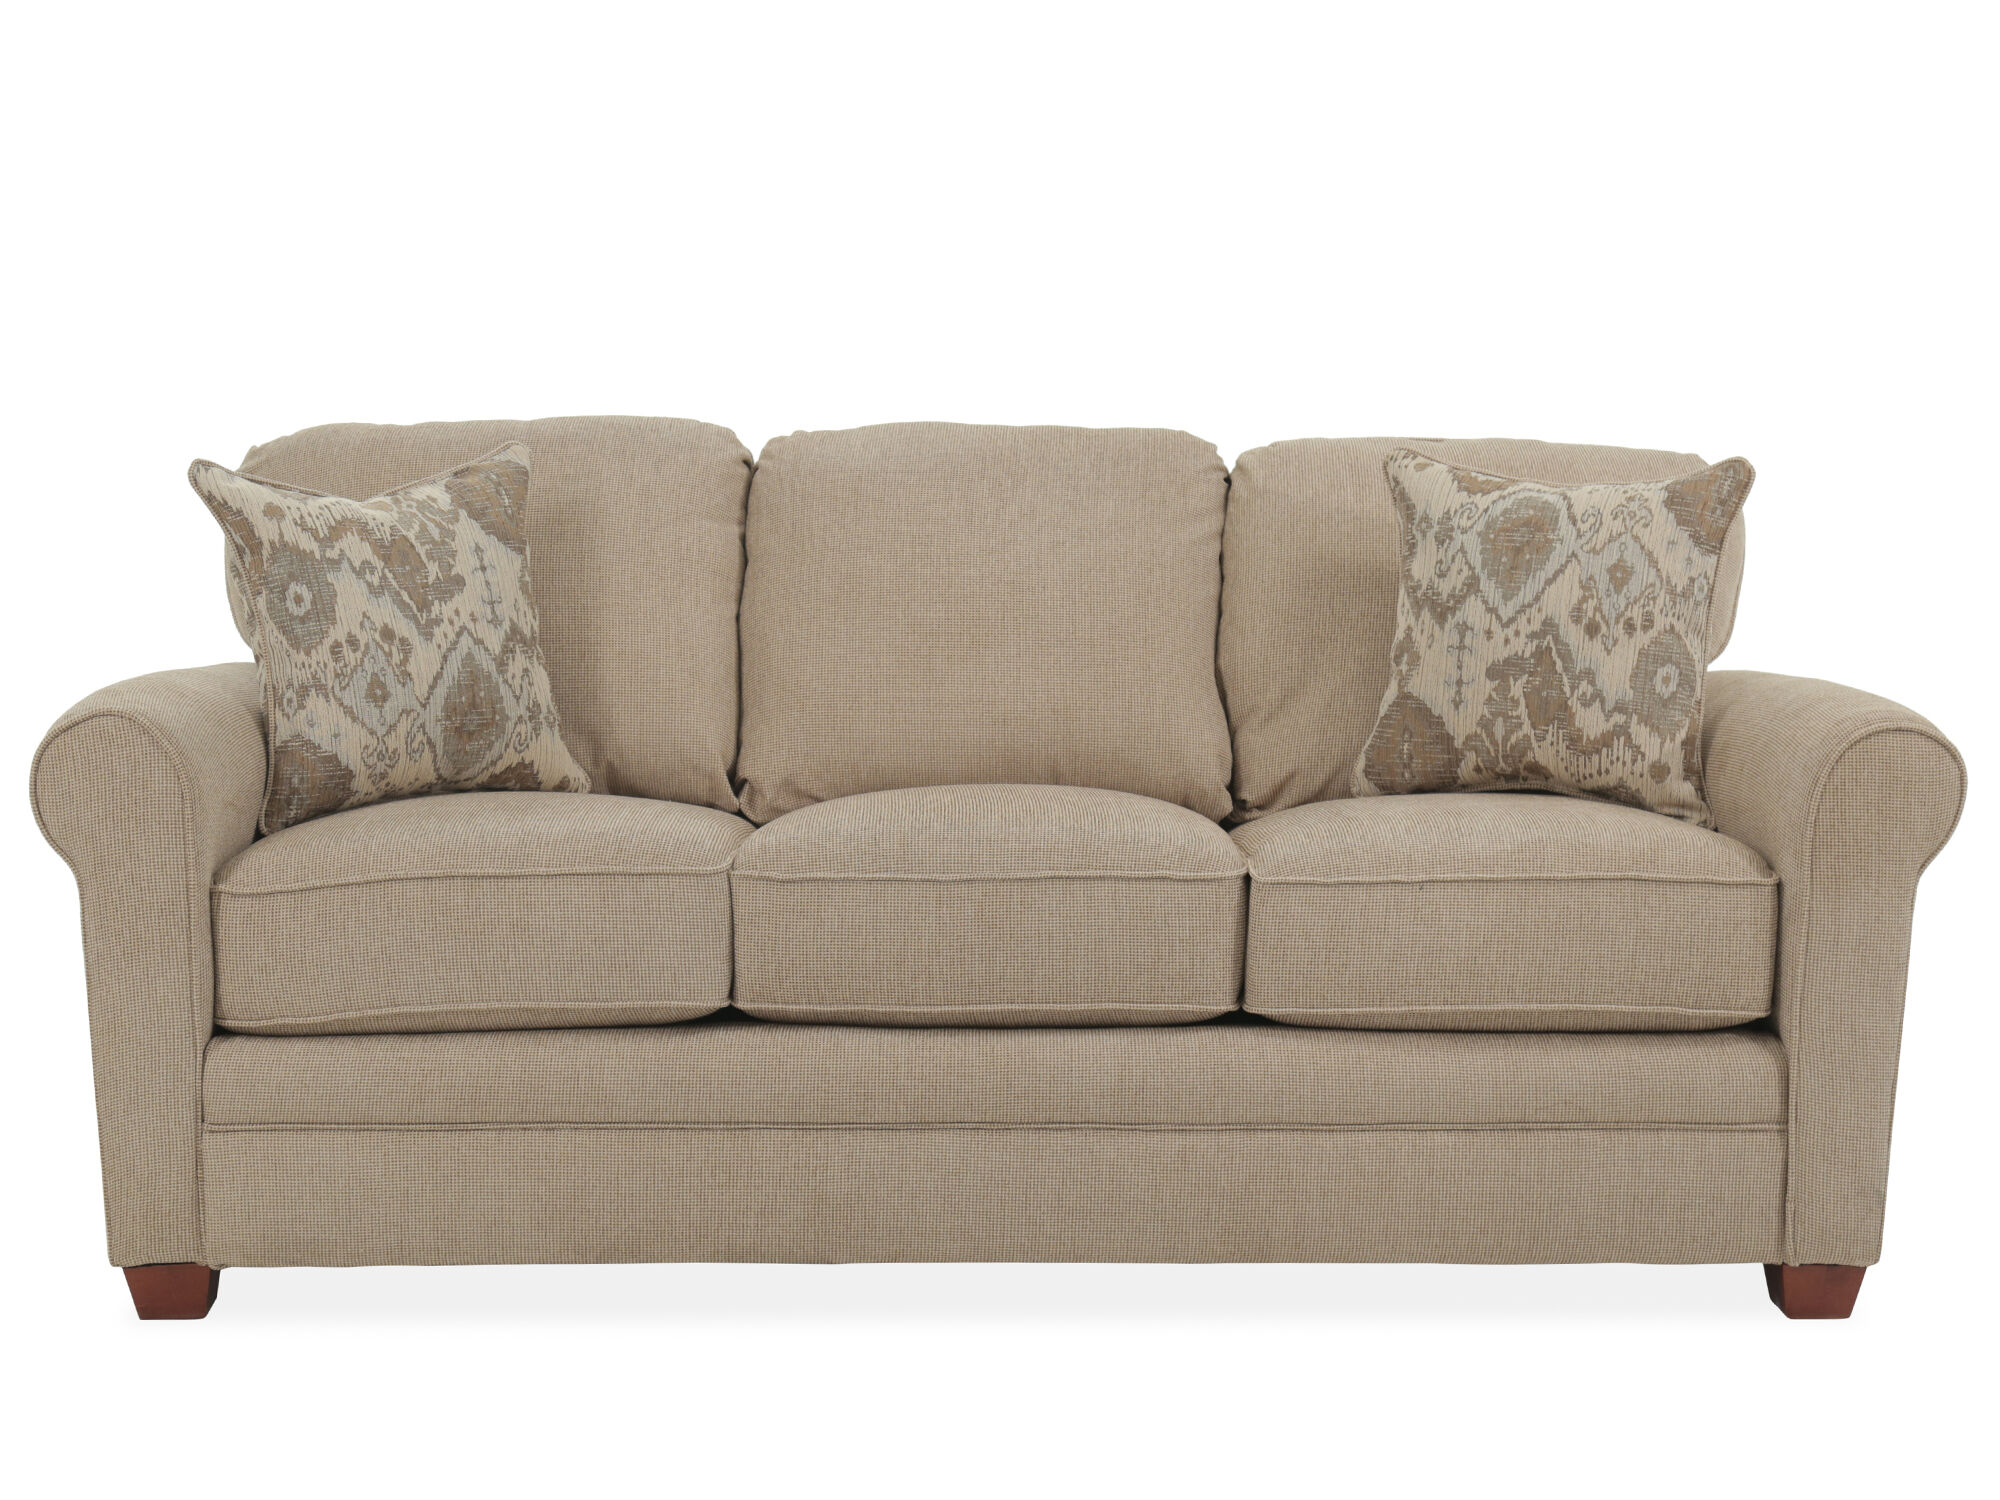 Roll Arm Transitional 84 Queen Sleeper Sofa In Sand